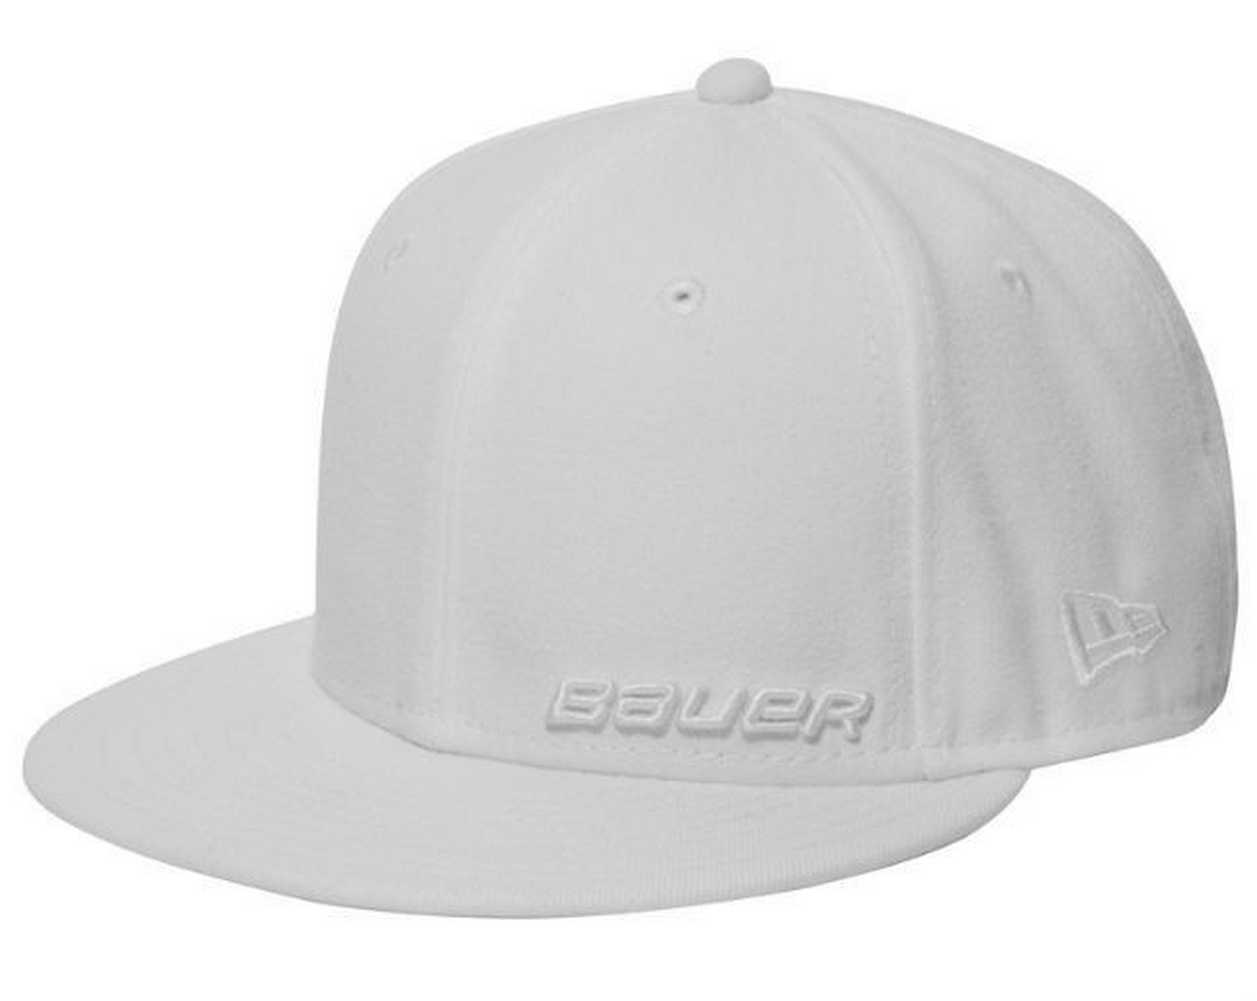 bauer new era 59fifty cap solid white fitted hockey hat